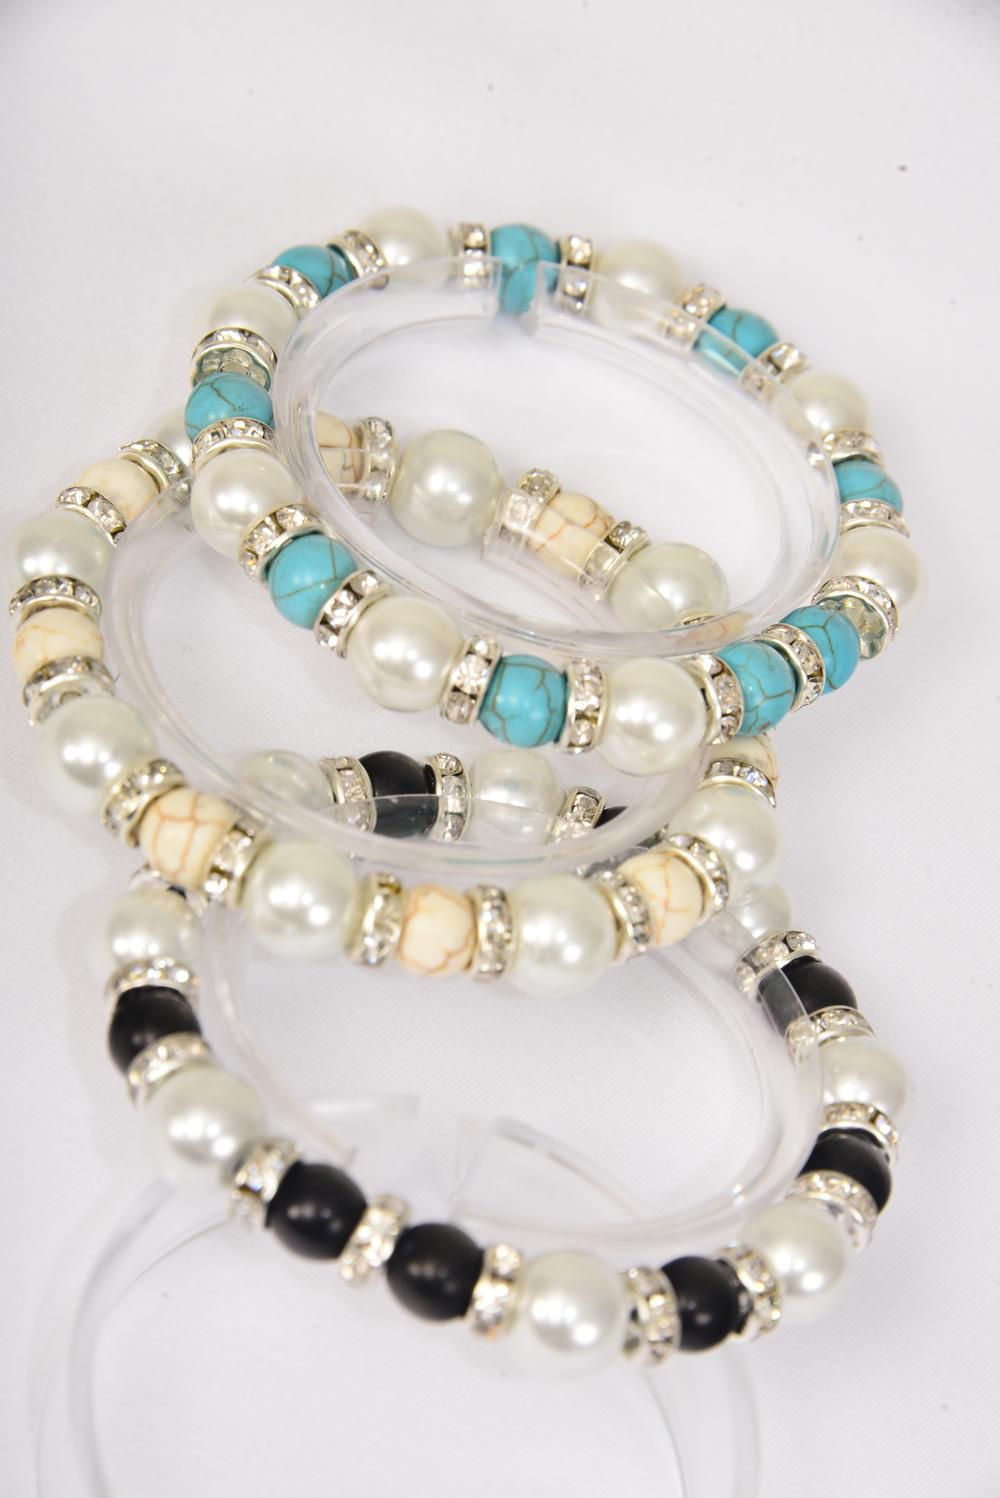 Bracelet 10 mm Pearl & Semiprecious Stone & Glass Pearl & Rhinestone Bessels Stretch/DZ **Stretch** 3 Black,3 Ivory,6 Turquoise,3 Color Asst,Hang Tag & Opp Bag & UPC Code -